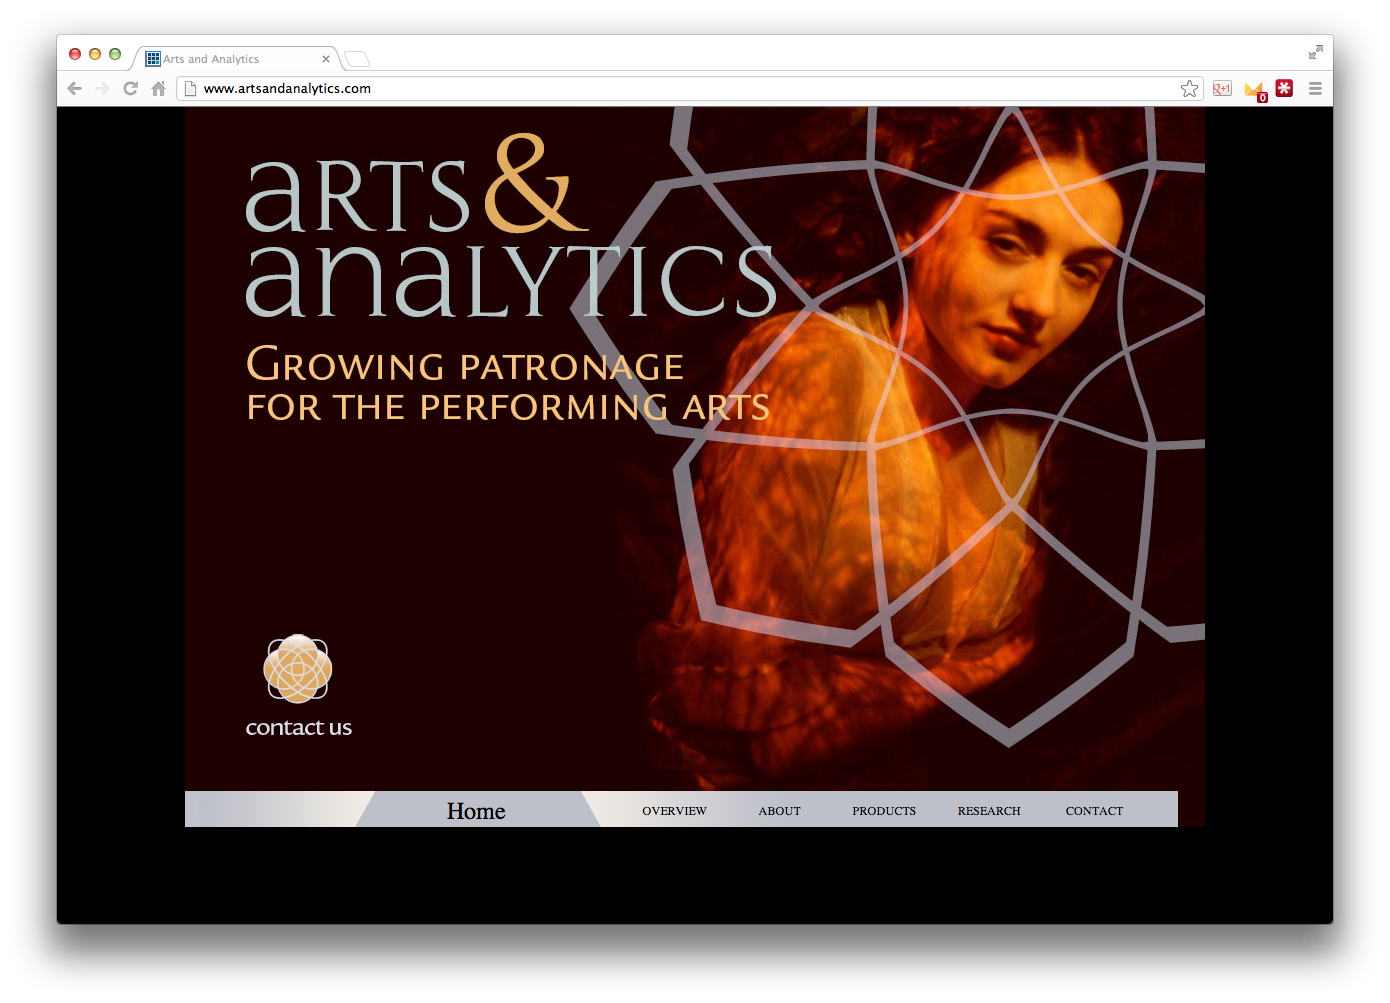 Arts & Analytics Website Image